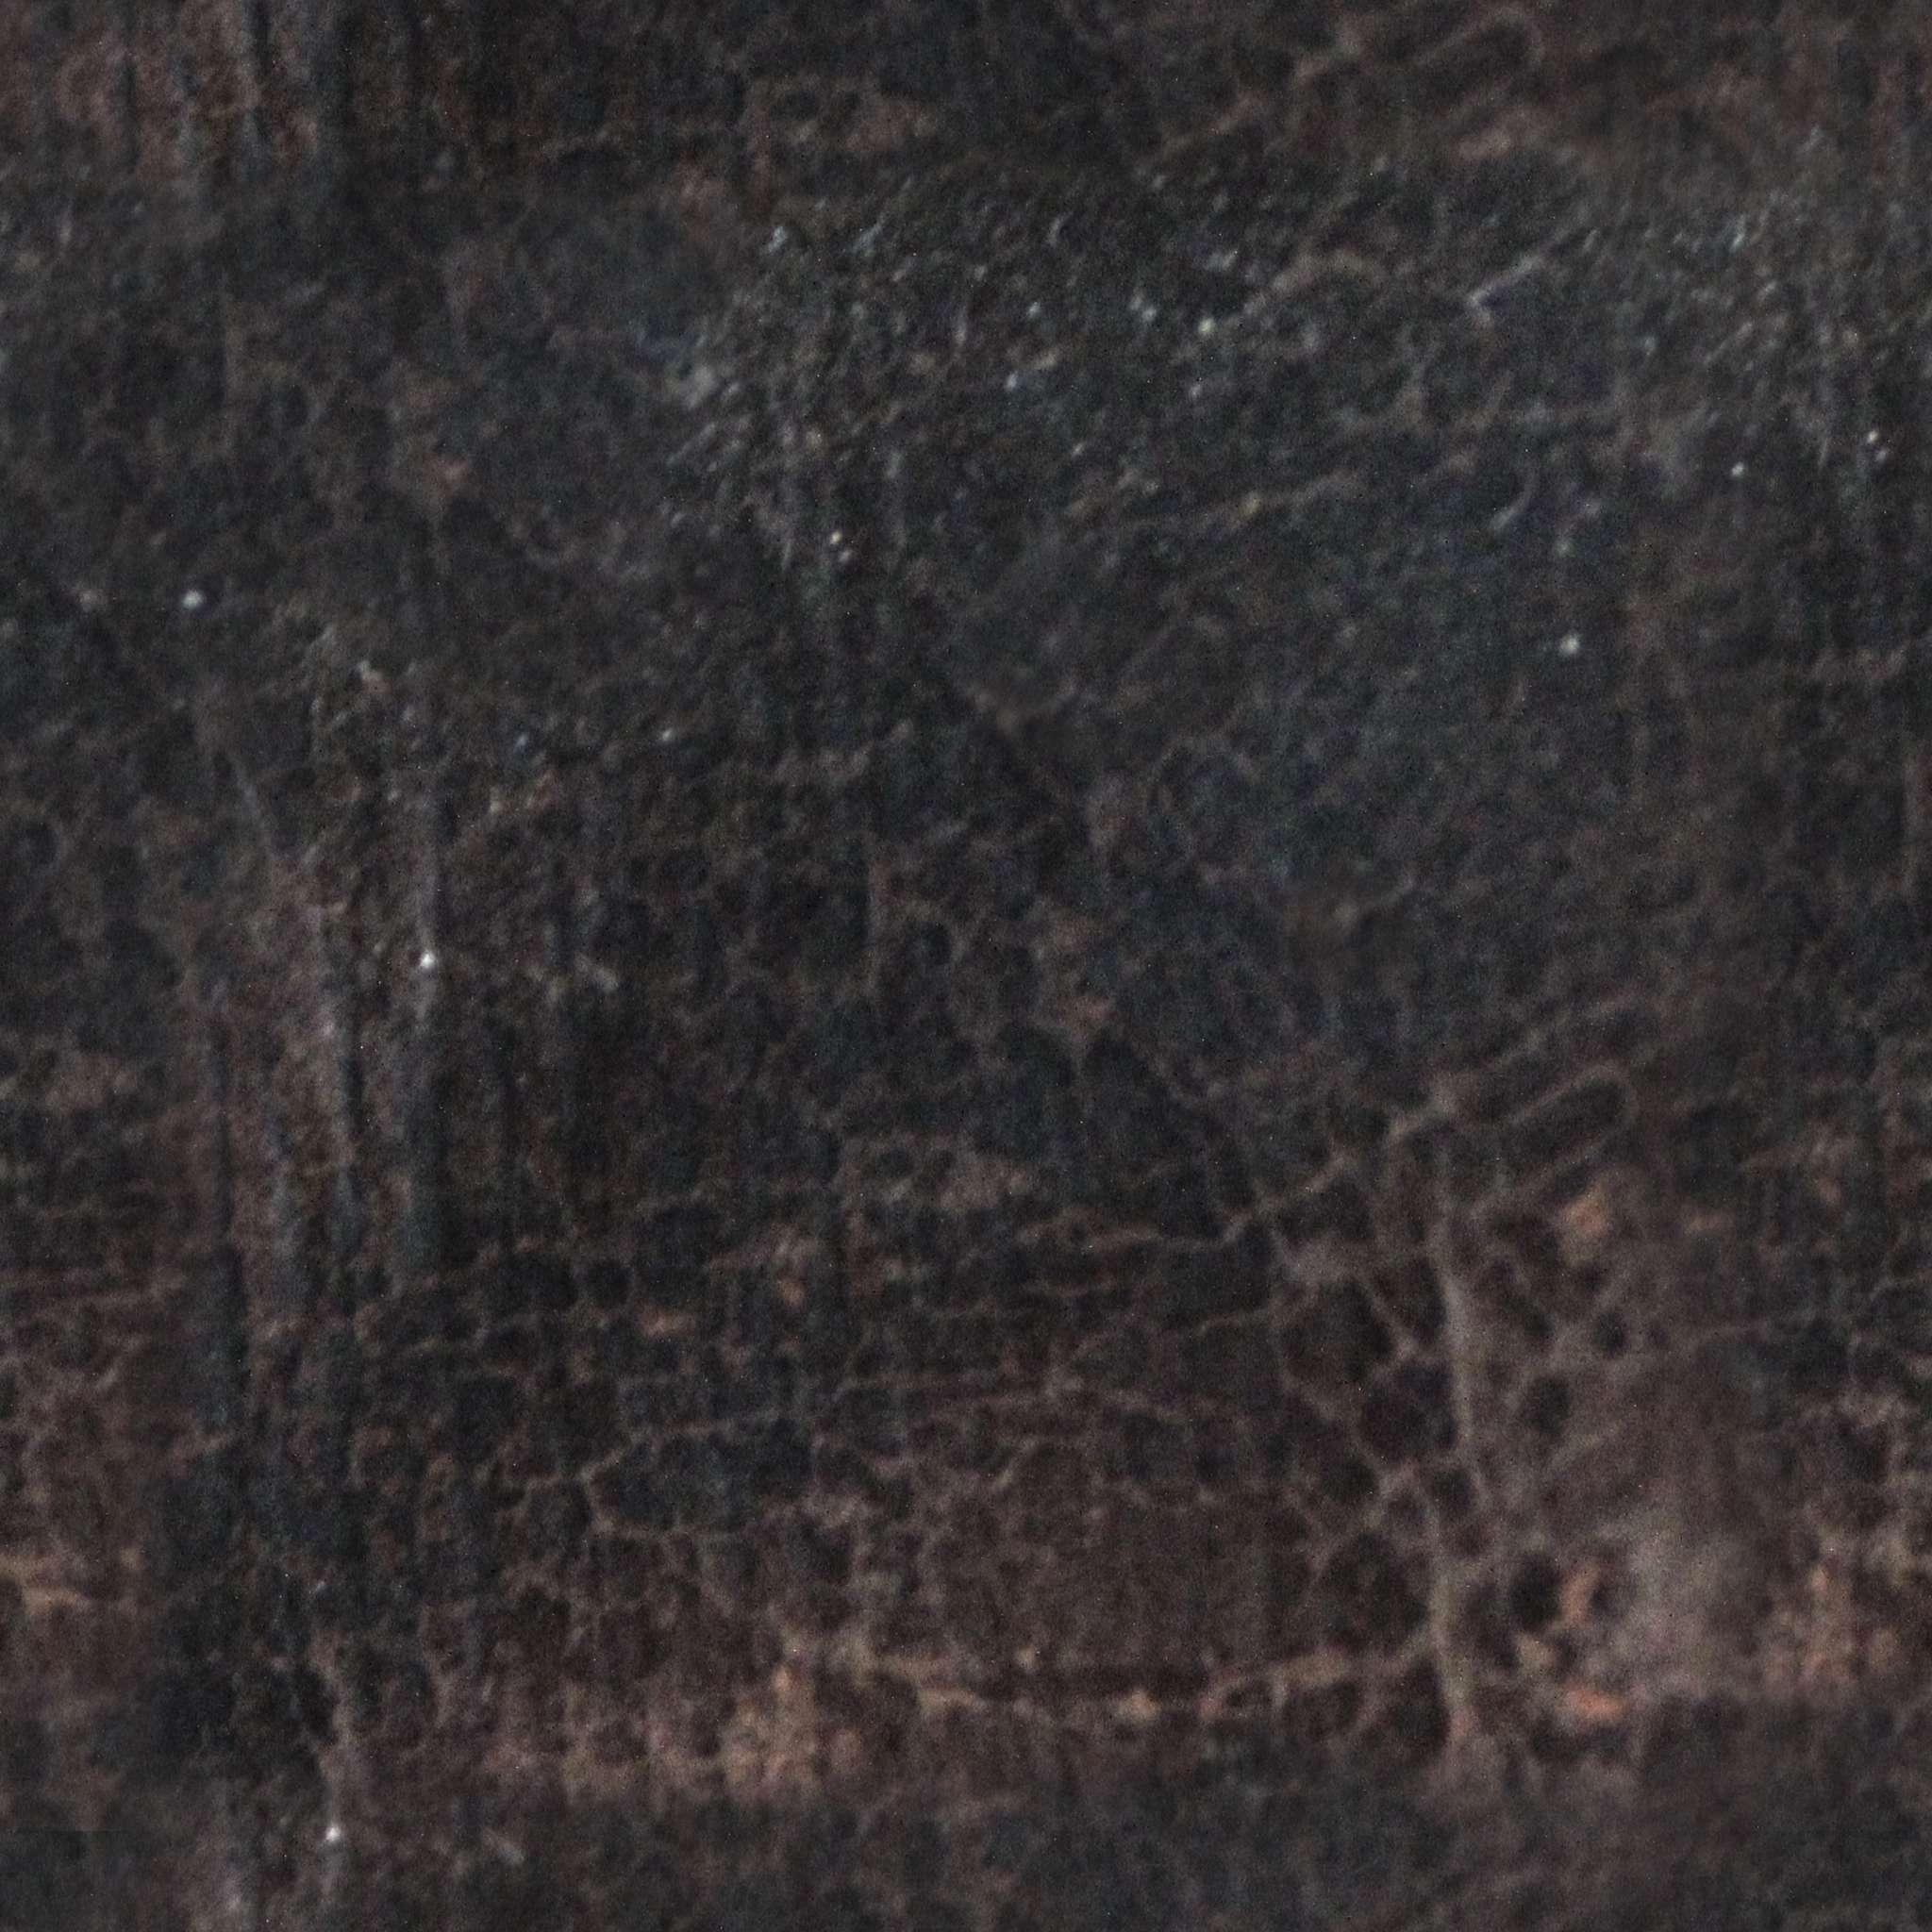 Fabric - Old Leather - Seamless Texture With Normalmap ...